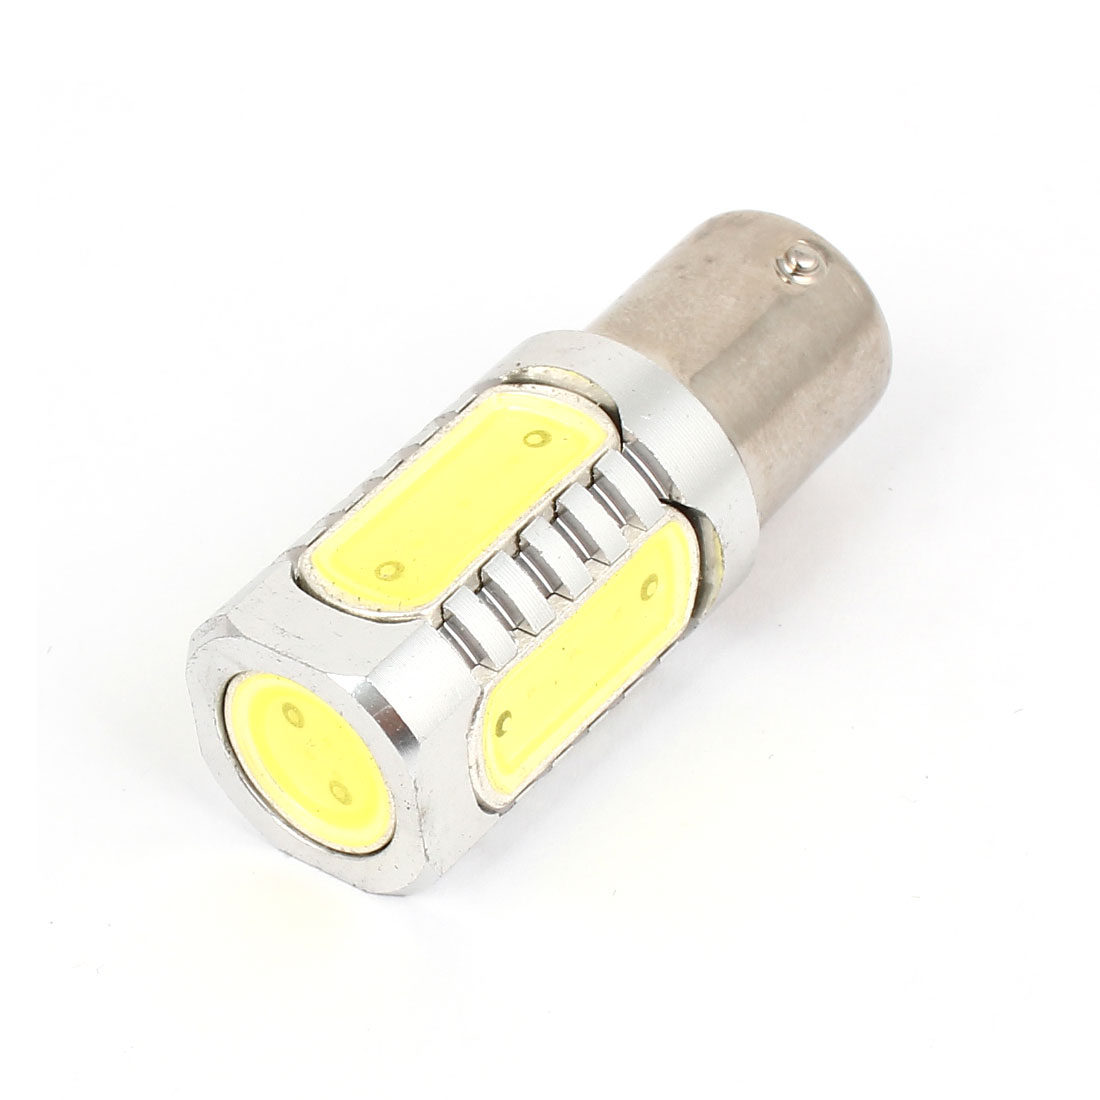 1156 White SMD LED Brake Tail Projector Lens Light Bulb 7.5W 12V for Car